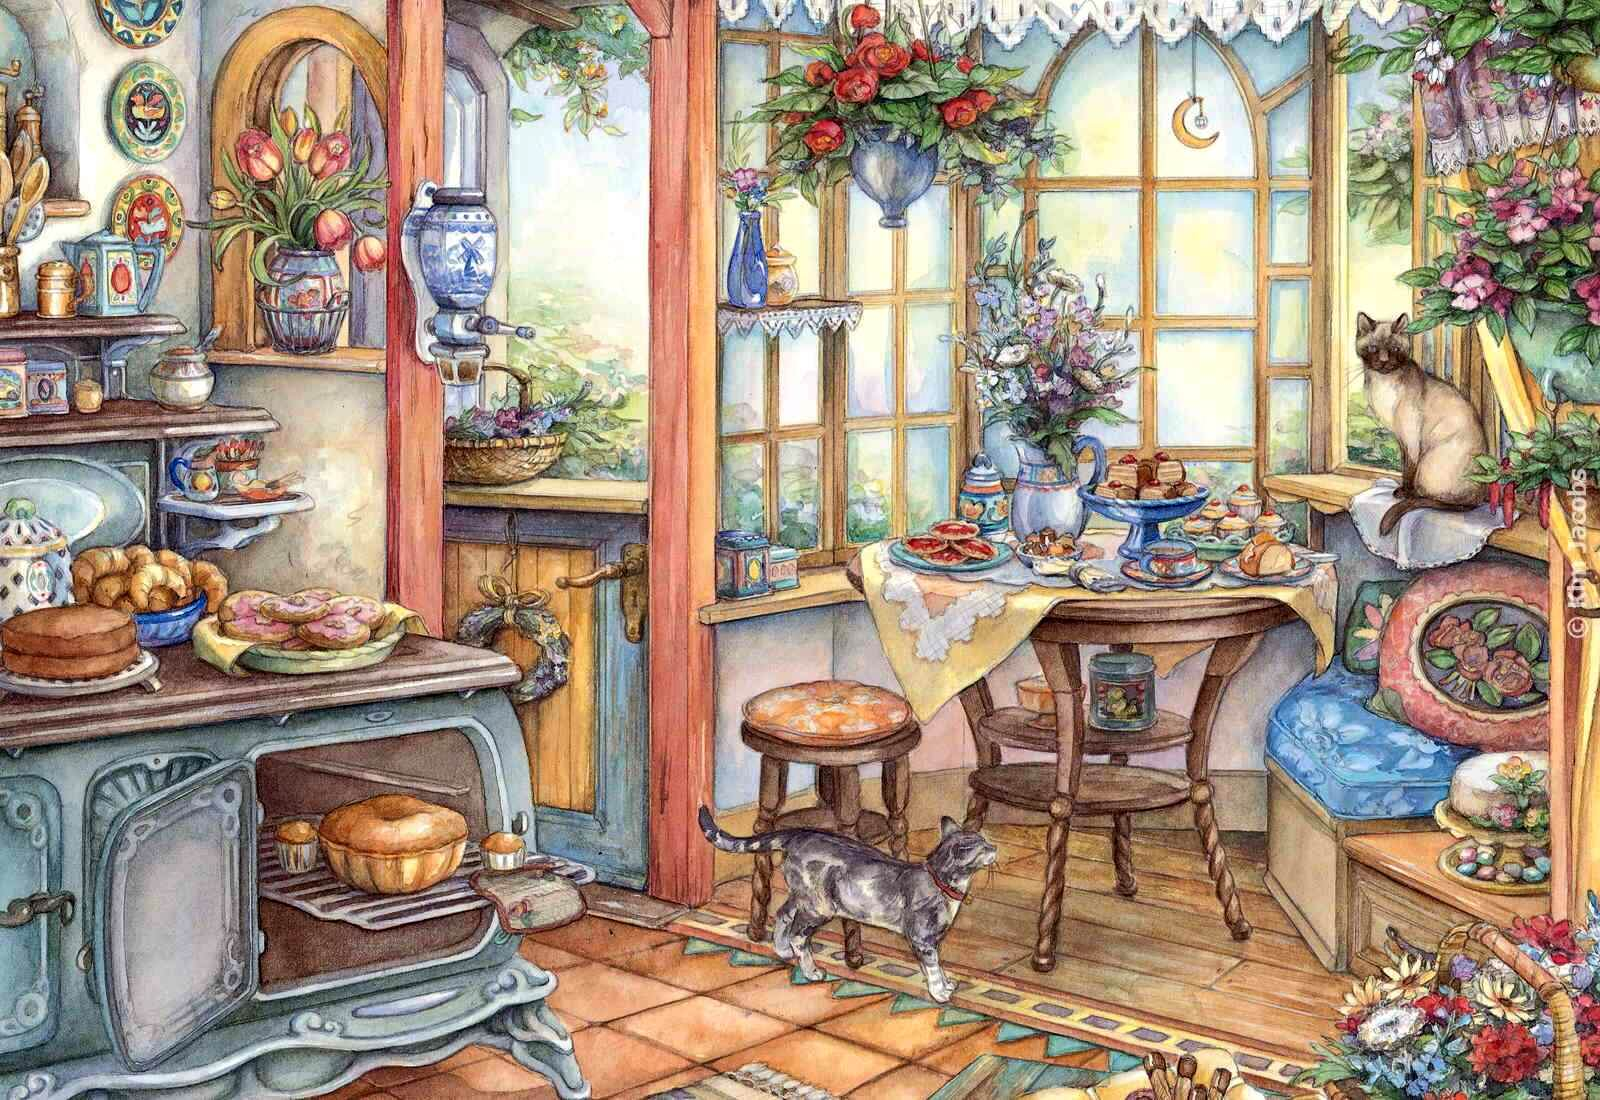 country kitchen sweet art 1000 images about cobblestone way on 6149